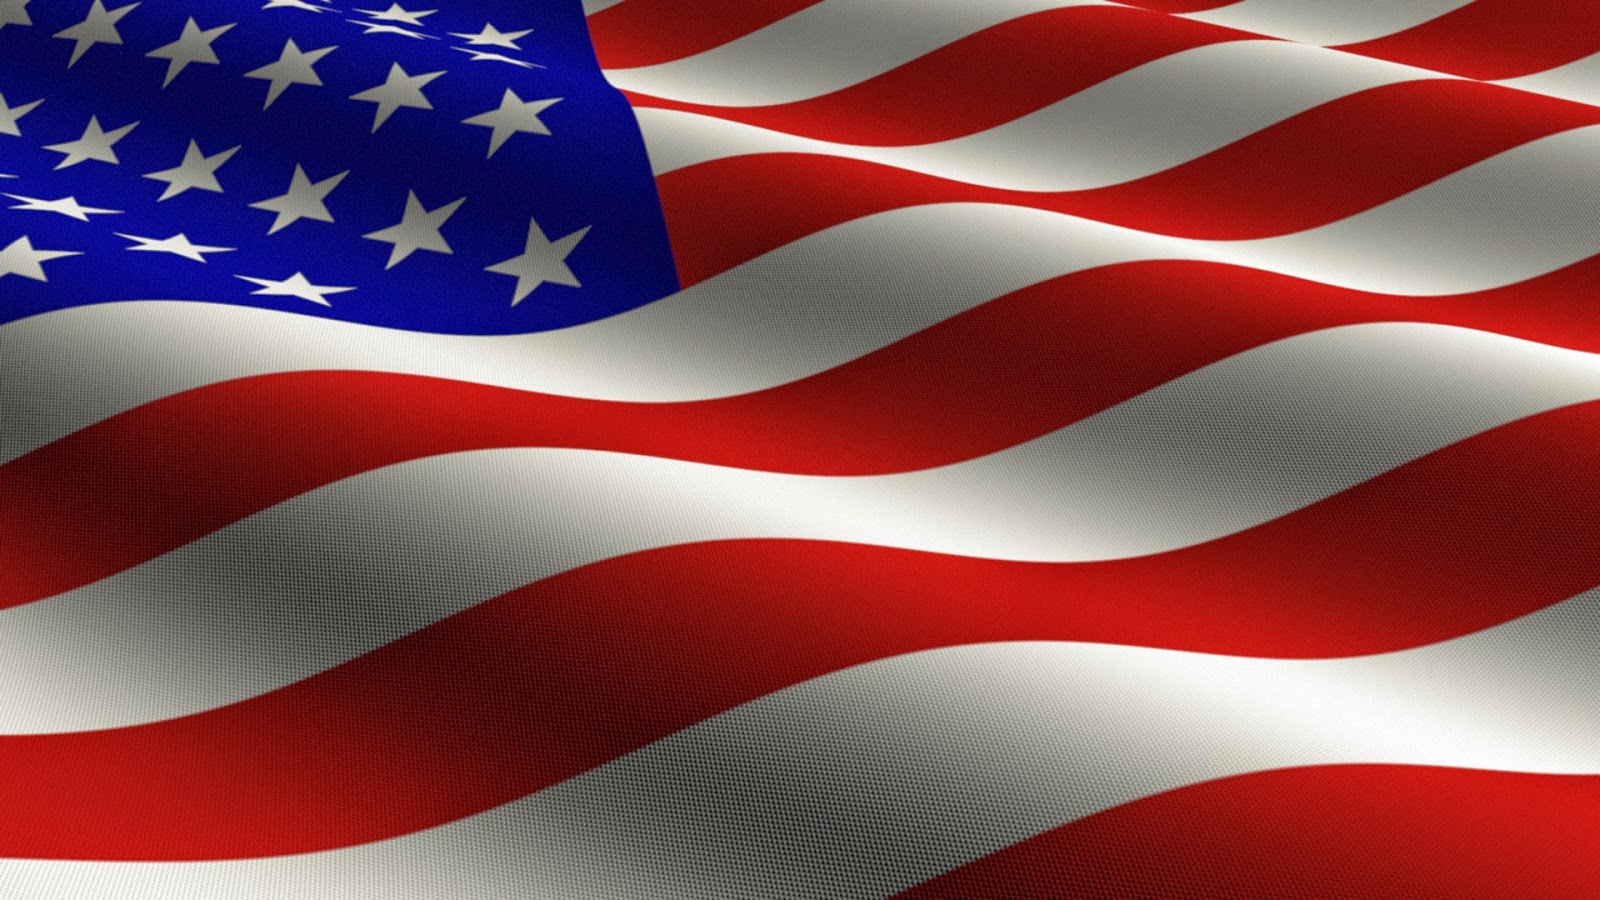 Waving American Flag Backgrounds Image 4th July